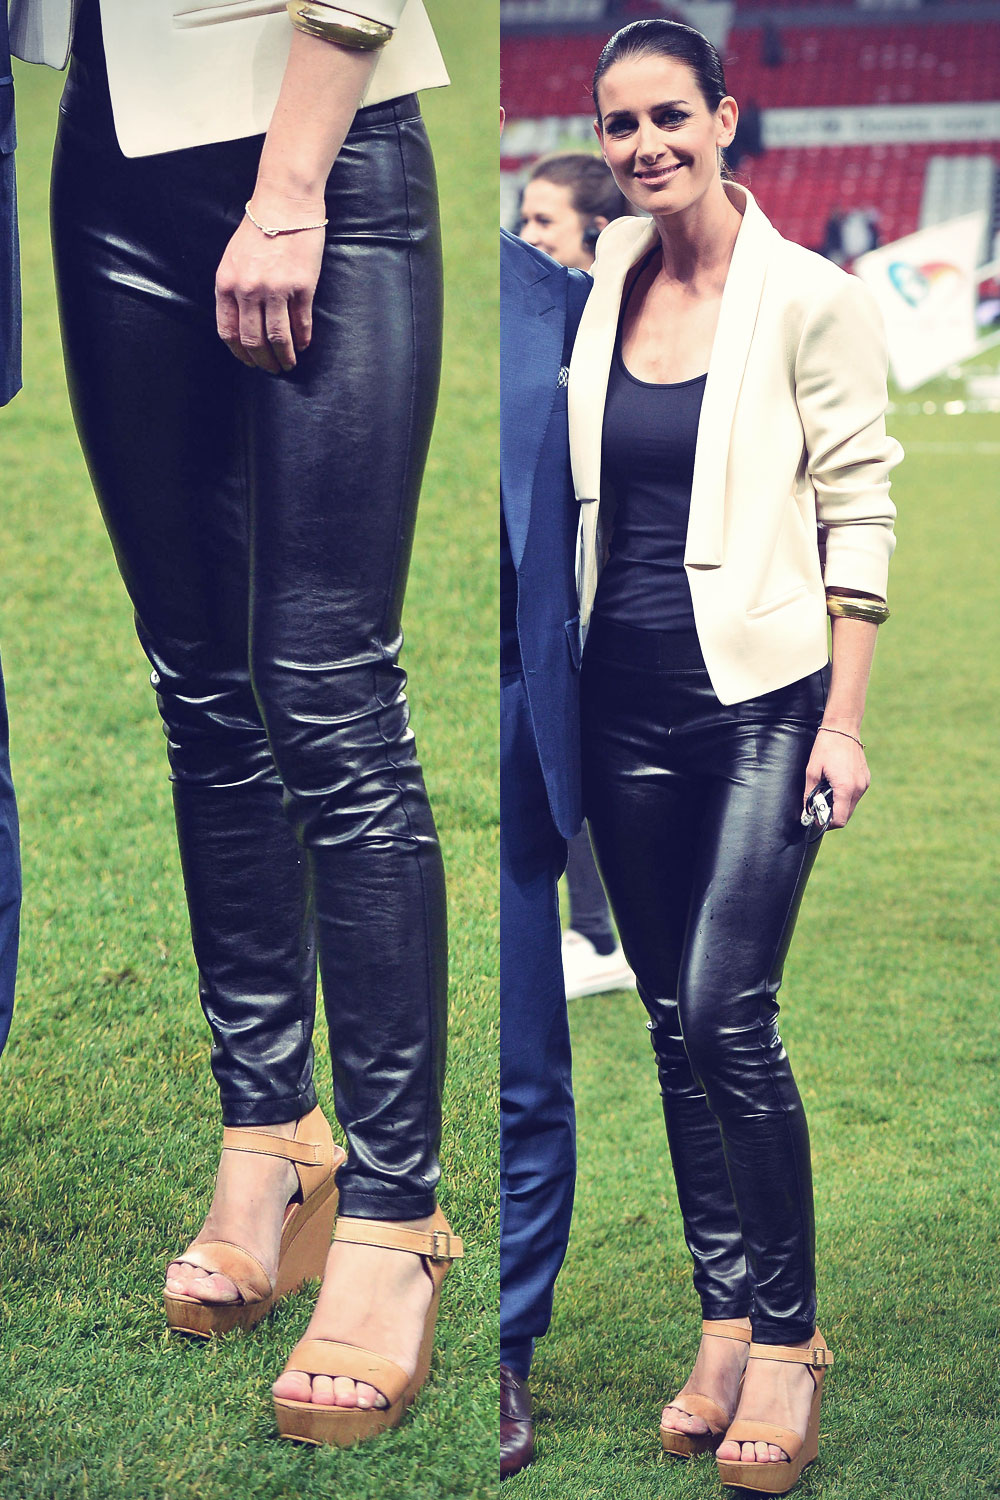 Kirsty Gallacher at soccer Aid Old Trafford Manchester